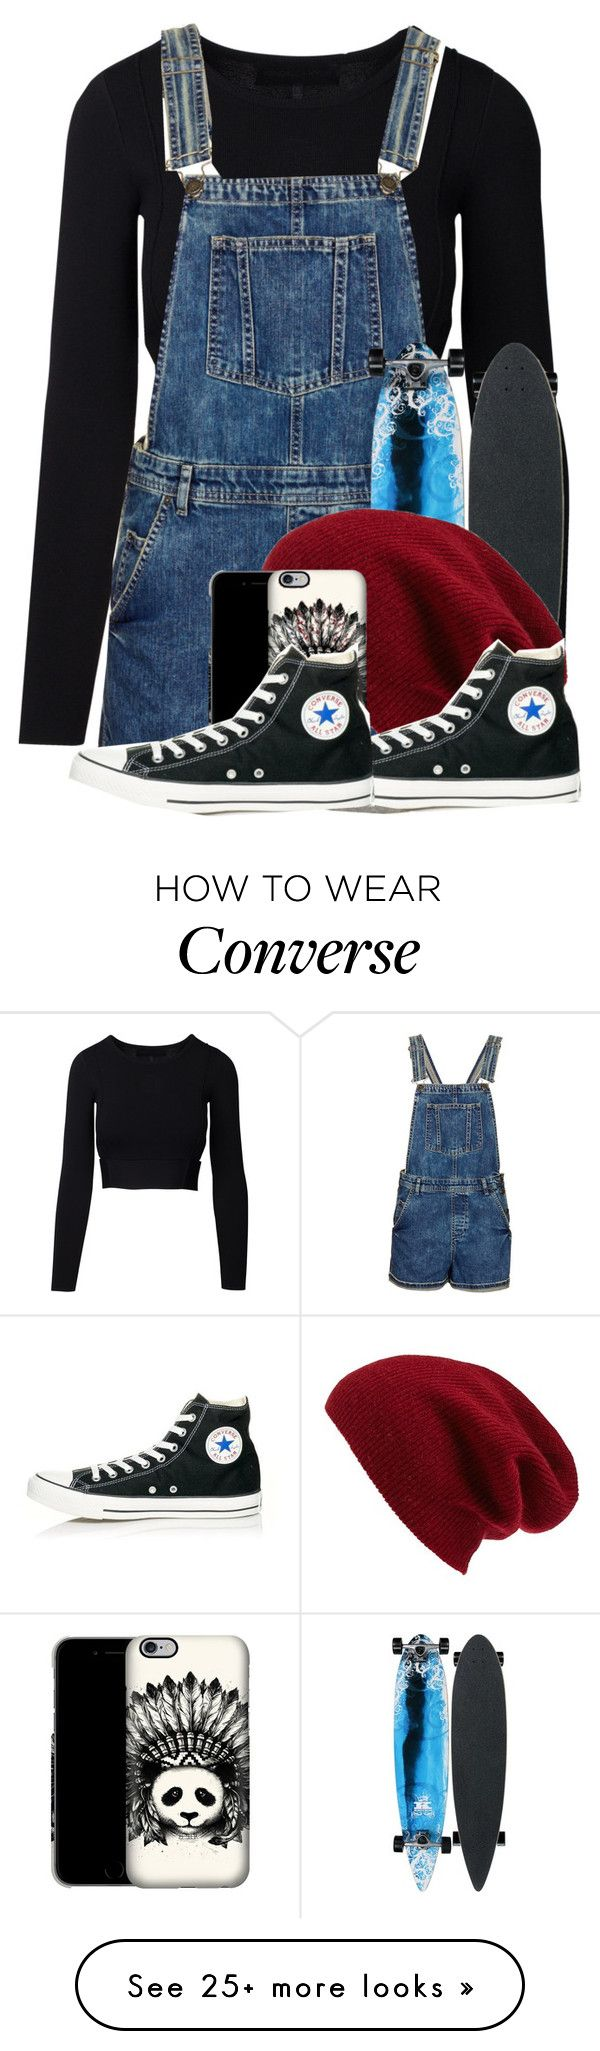 """Untitled #1235"" by jasloves5sos on Polyvore featuring Topshop, Halogen and Converse"